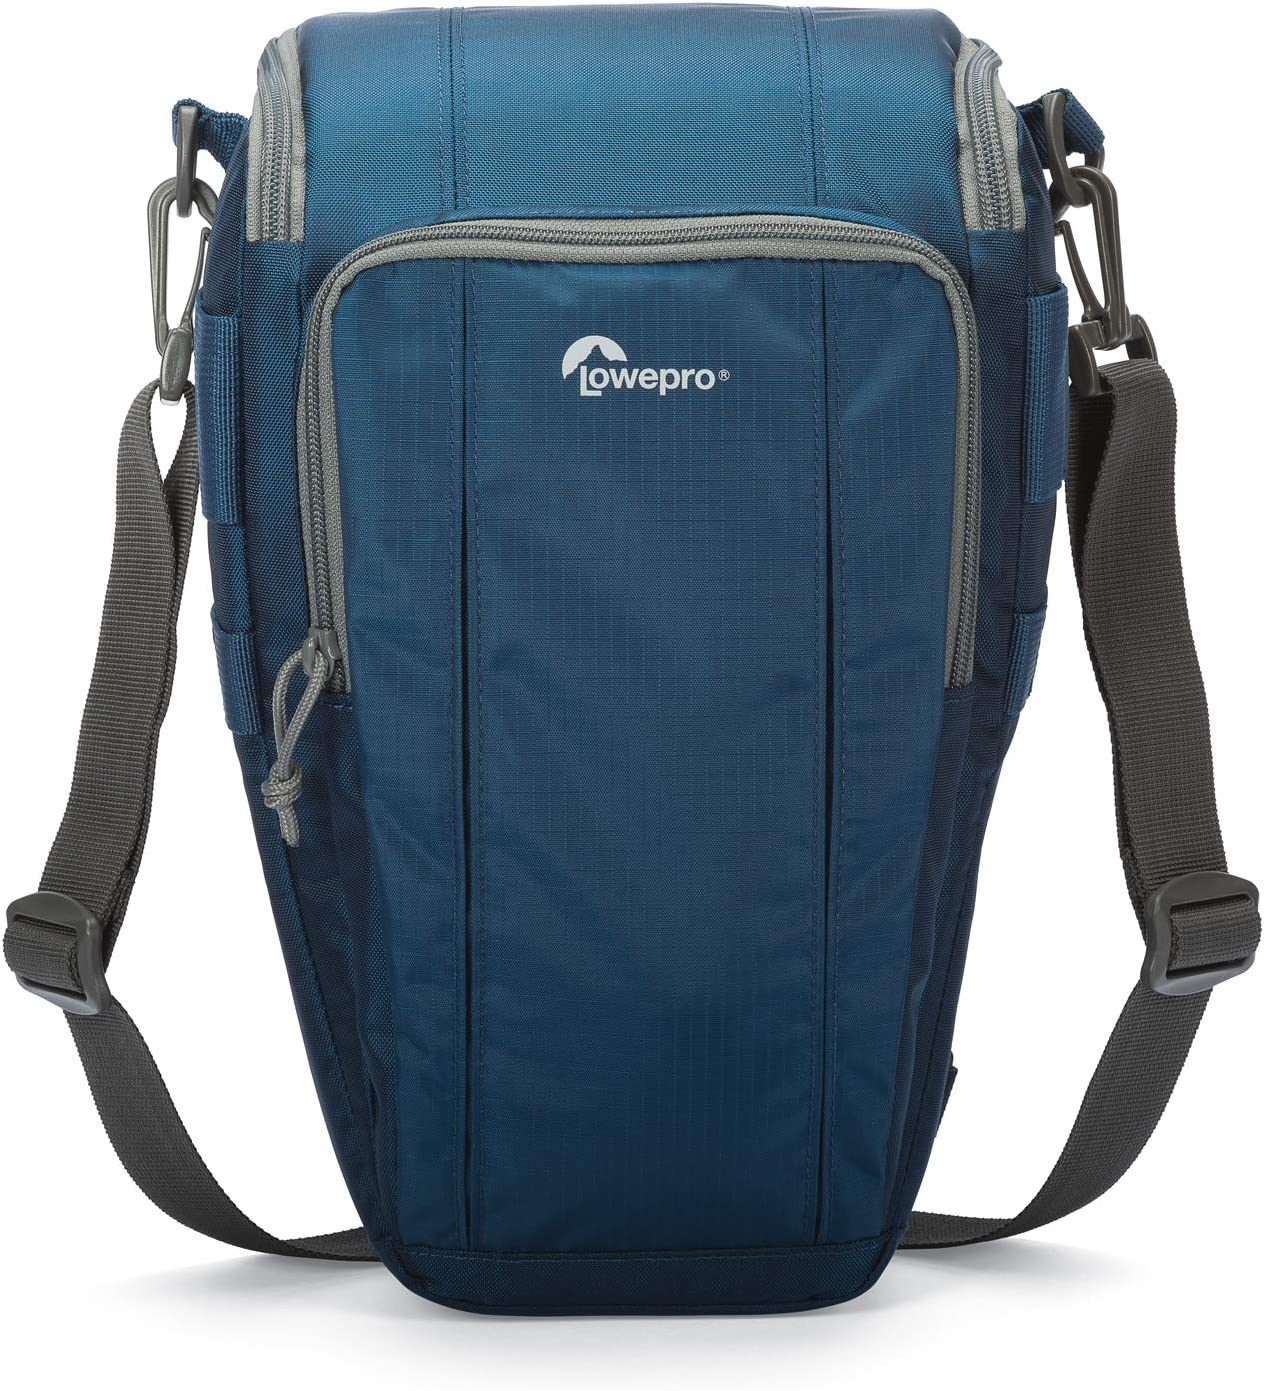 Lowepro Toploader Zoom 55 AW II Camera Case for DSLR and Lens, Blue